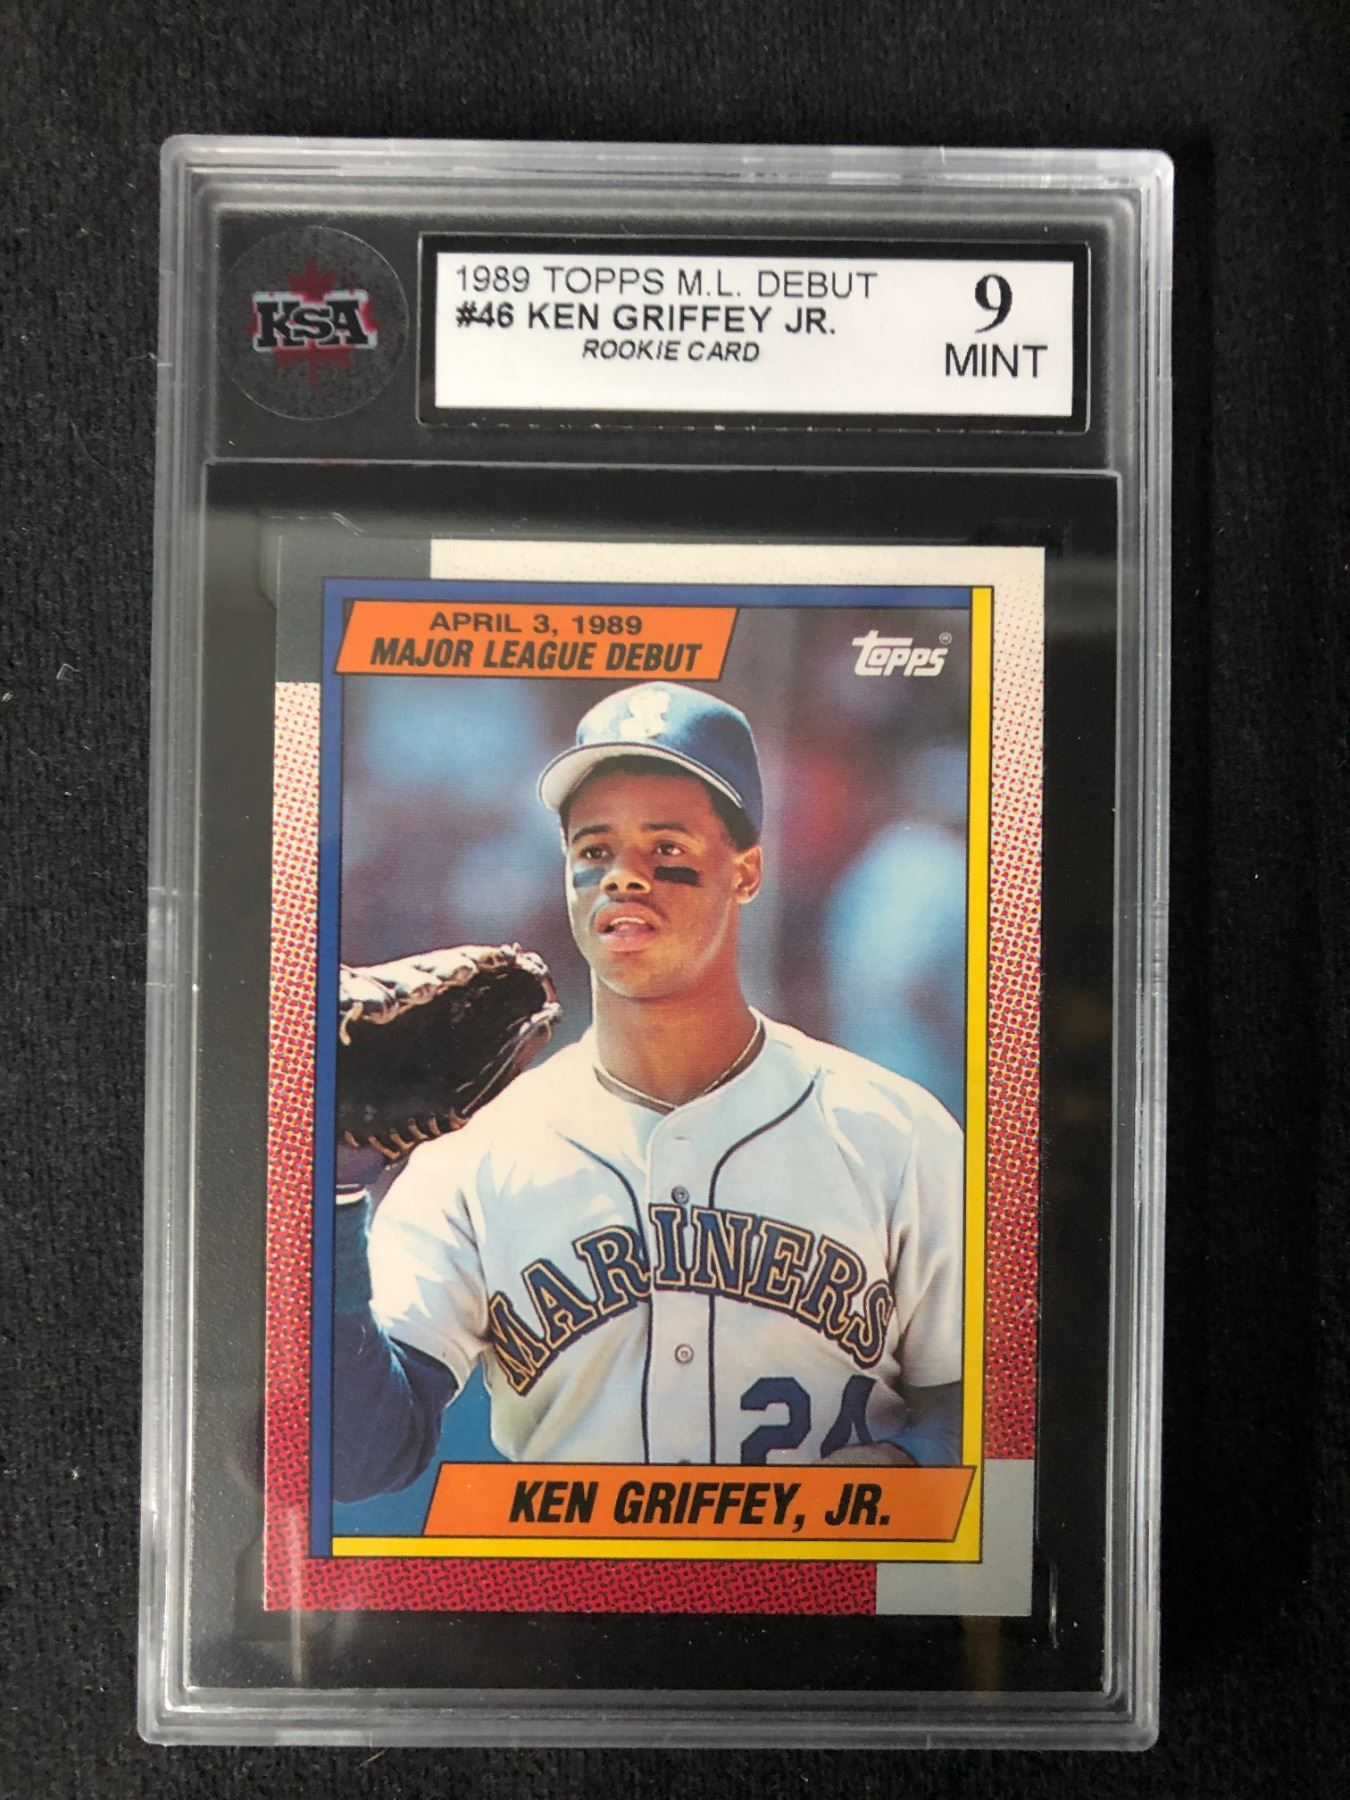 1989 Topps Ml Debut 46 Ken Griffey Jr Rookie Card 9 Mint